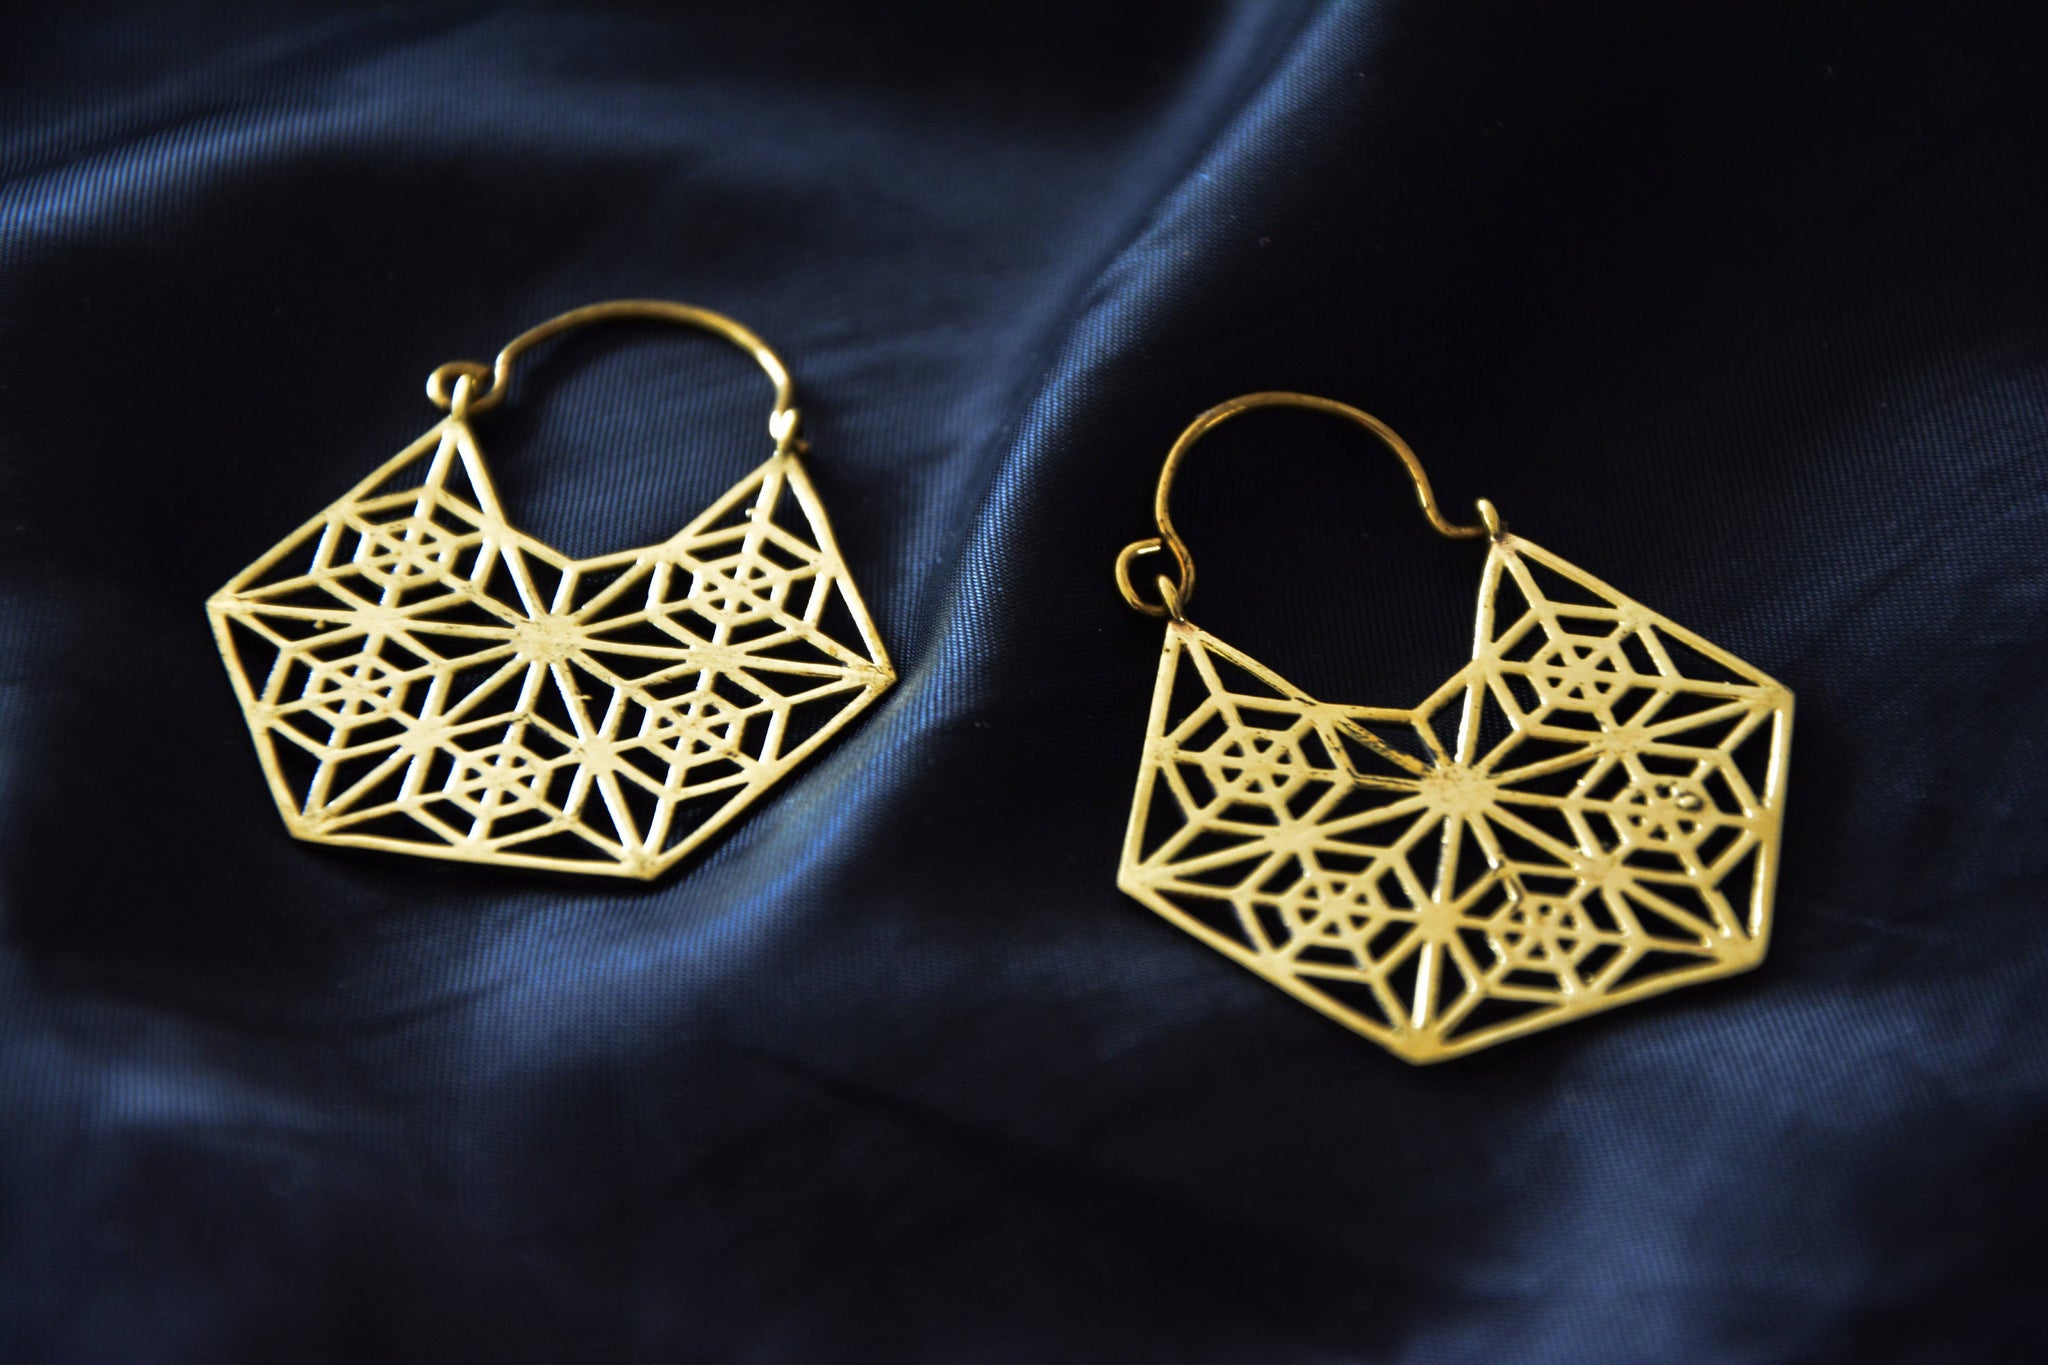 GEOMETRIC Earrings - Tribal Jewellery, Tribal Hoops, Tribal Earrings, Psytrance, Geometric Earrings, Sacred Geometry Earrings, Gypsy